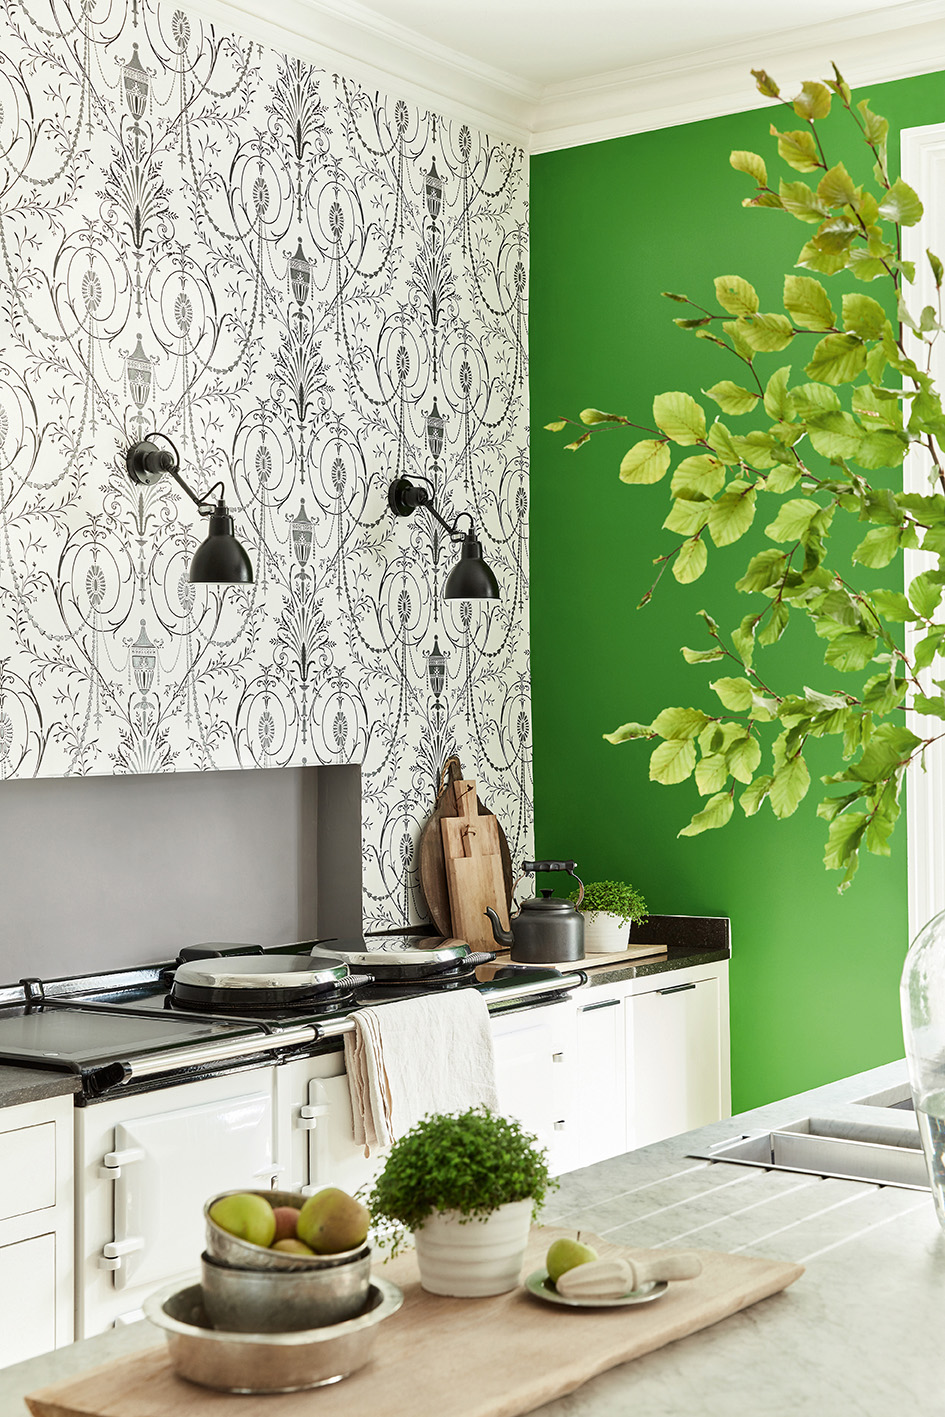 Behang Little Green #interieur #behang #interieurinspiratie #kleur #wandbekleding #interior